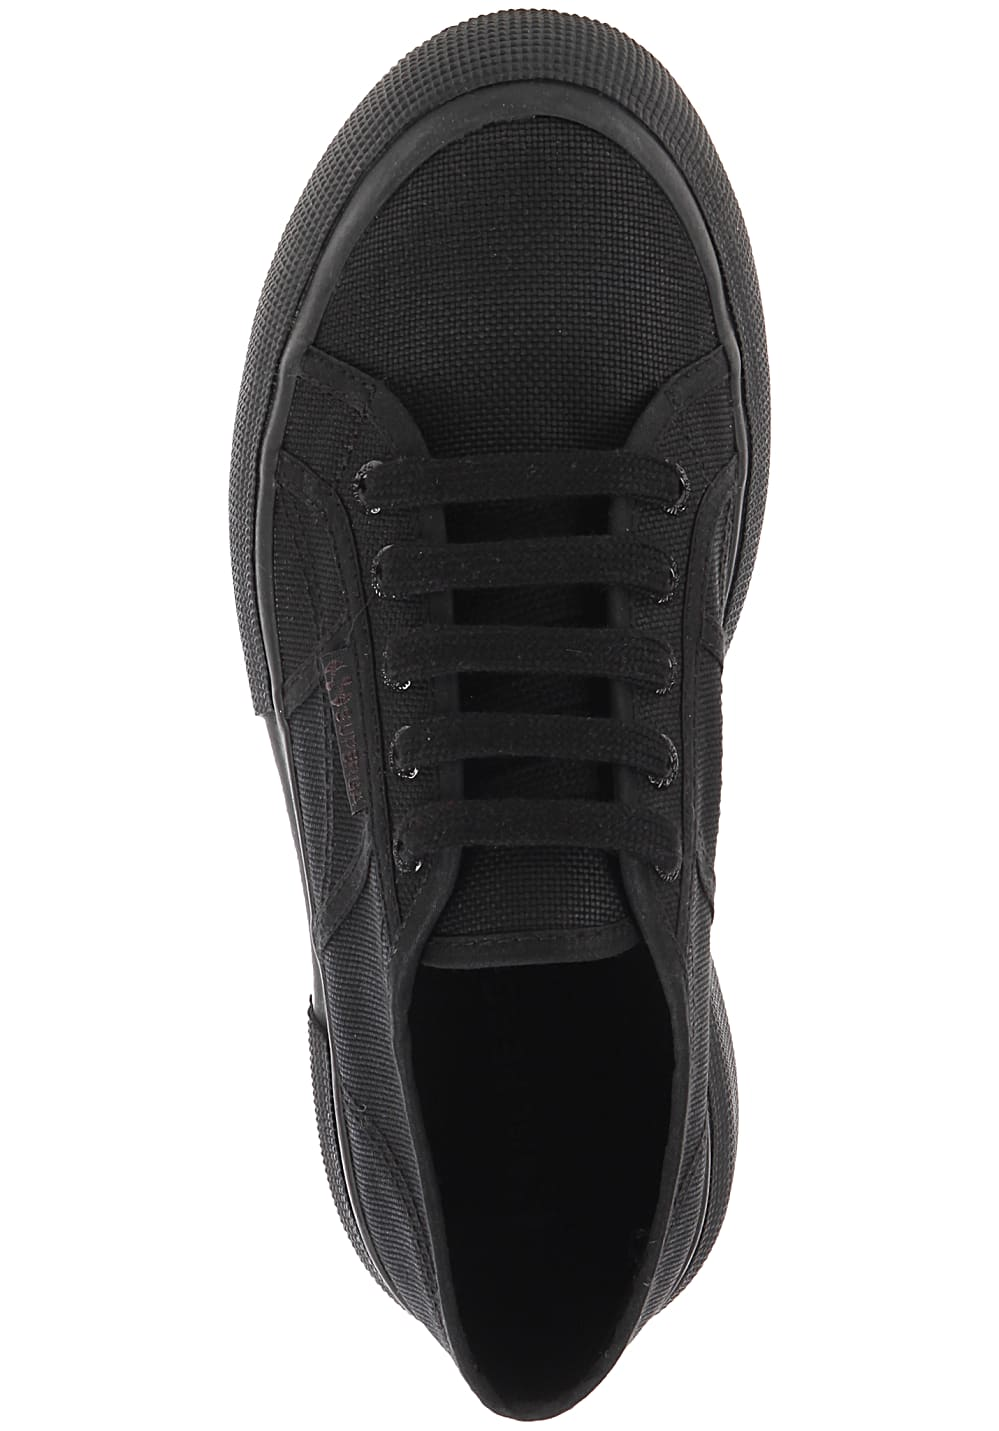 111f8f6121f6 Next. SUPERGA. 2287 Cotu - Sneakers for Women. €76.47. incl. VAT plus  shipping costs. Black White